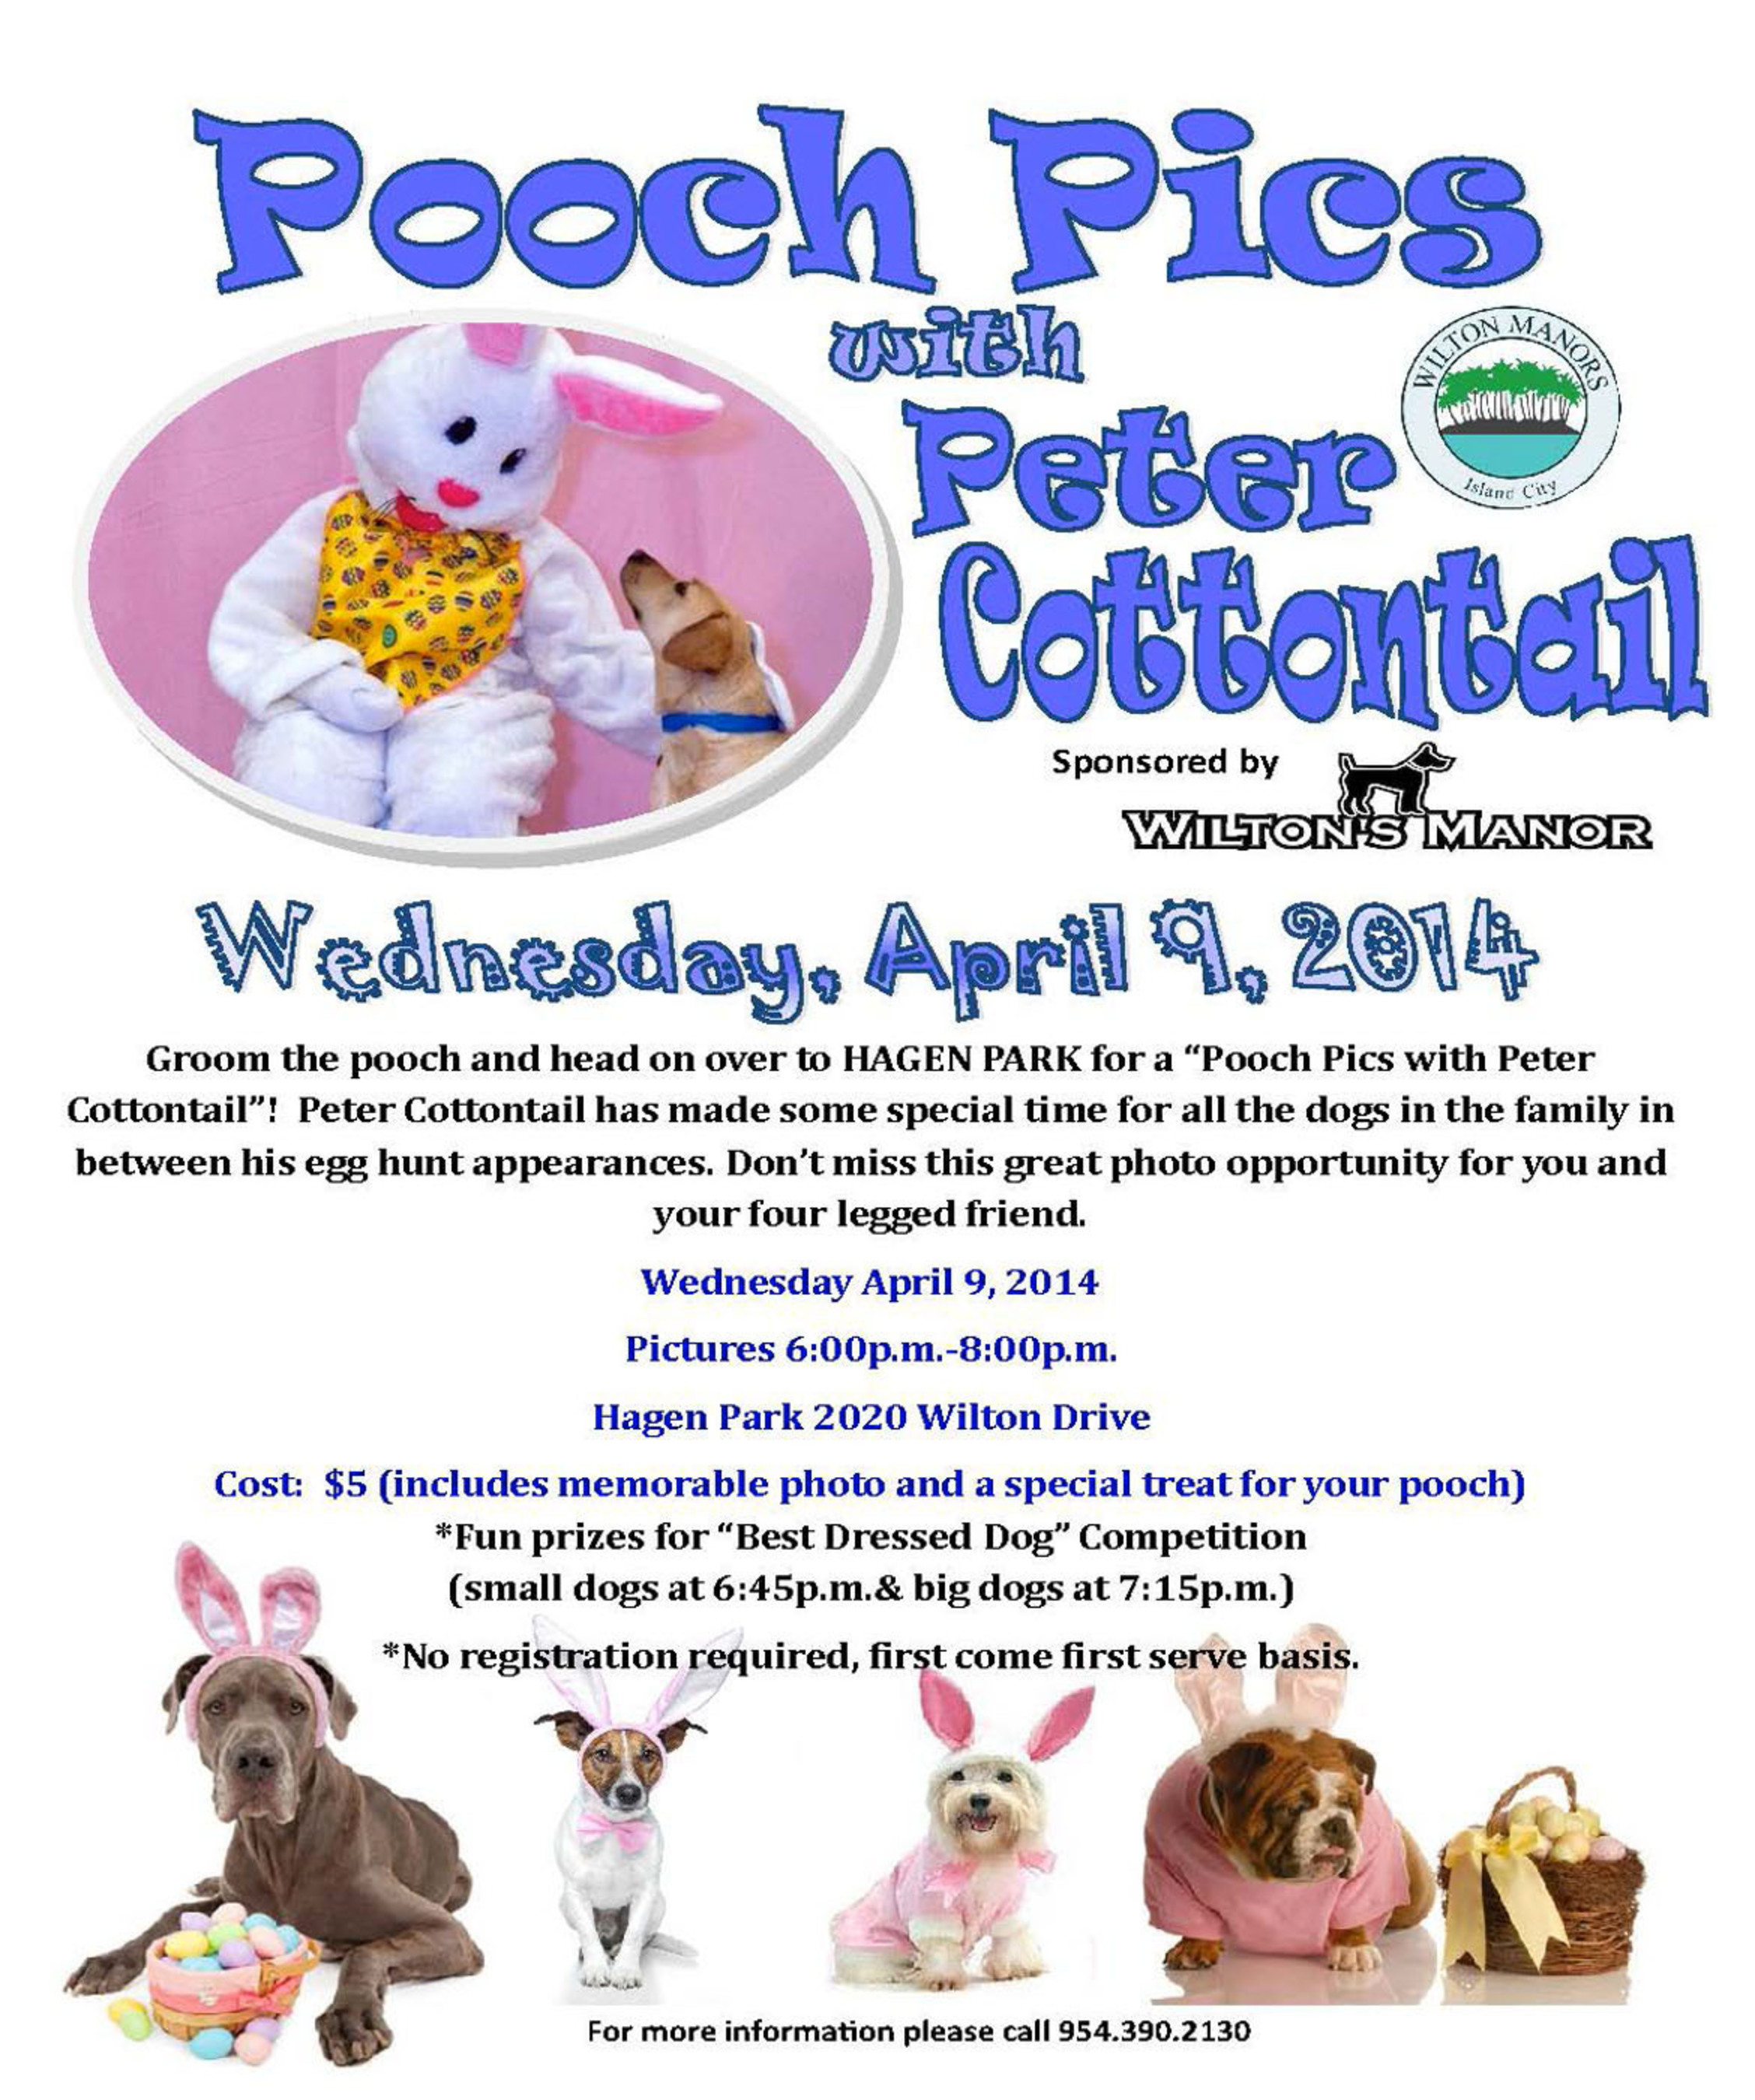 Pooch Pics with Peter Cottontail Event at Hagen Park in Wilton Manors on April 9th. (PRNewsFoto/City of Wilton Manors) (PRNewsFoto/CITY OF WILTON MANORS)